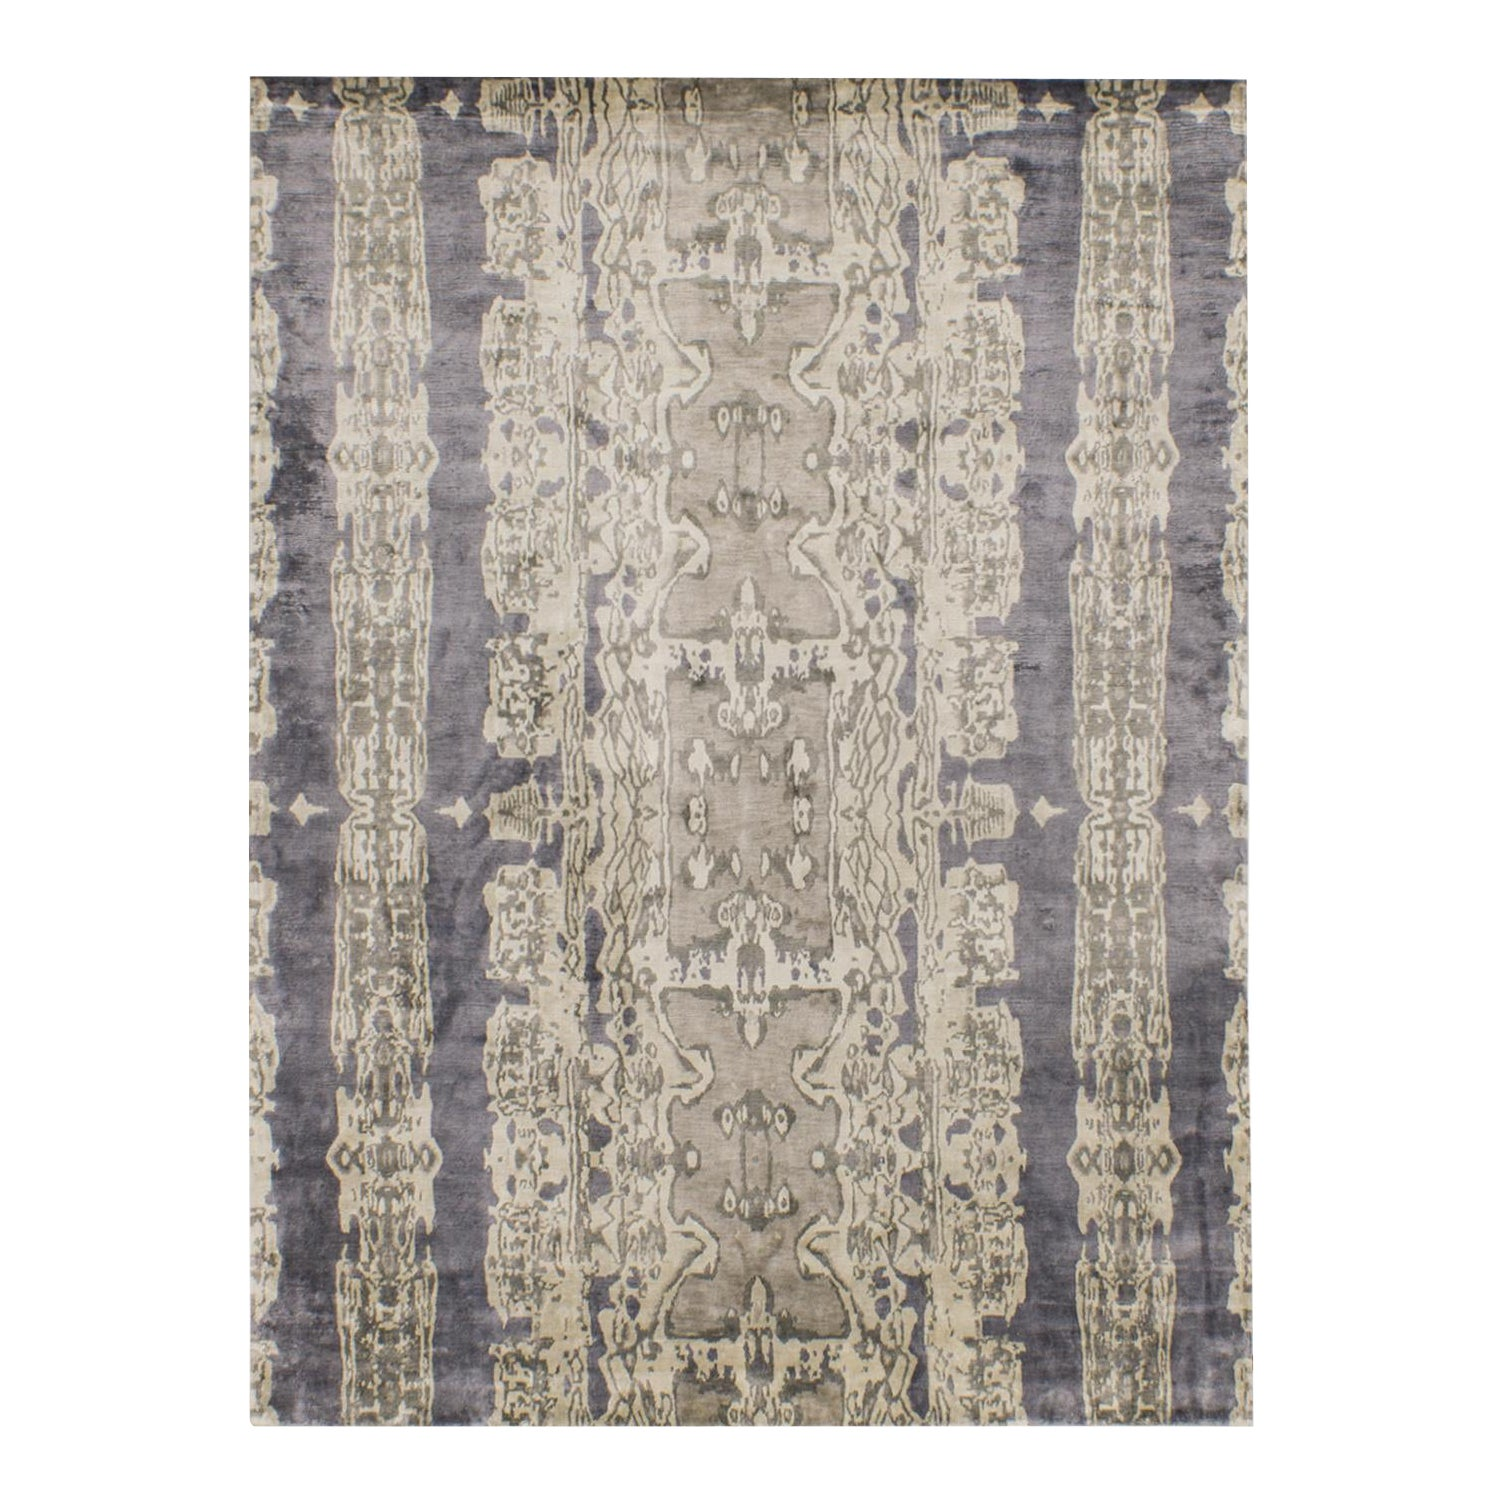 Solo Rugs Grit And Ground Collection Contemporary Electro Fusion Silk Hand Knotted Area Rug Silver 10 X 14 Chairish